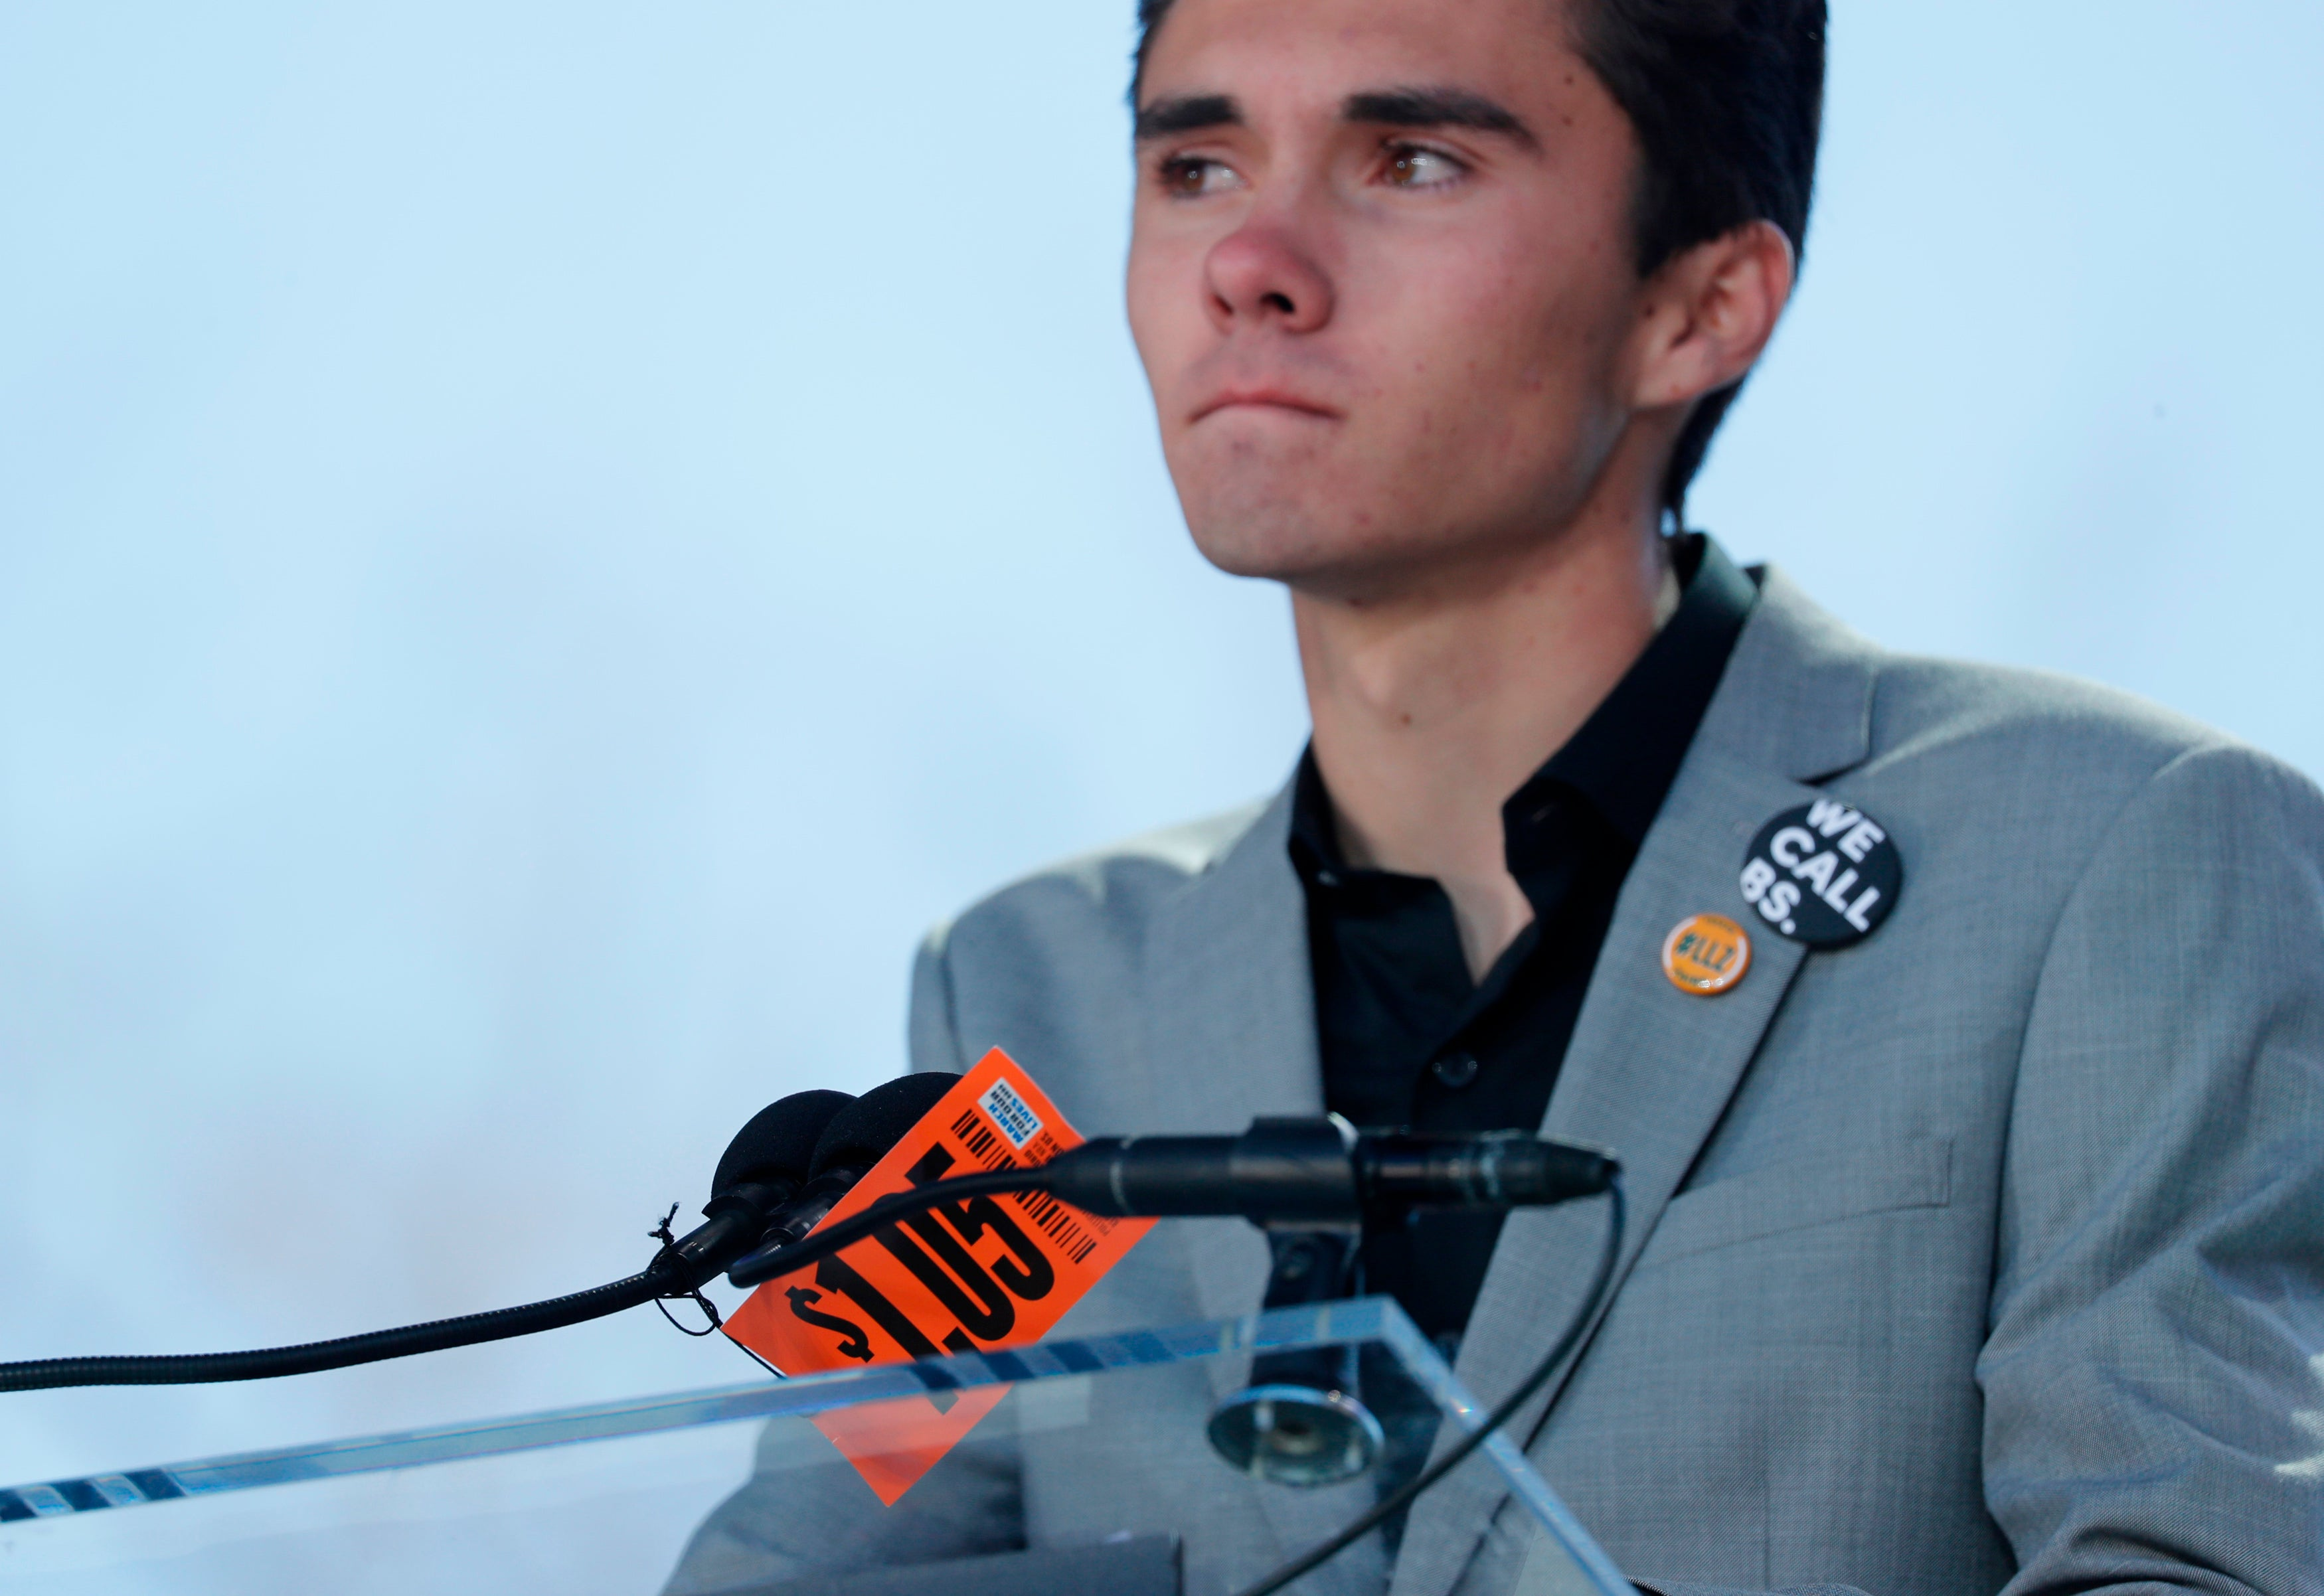 David Hogg, a student at the Marjory Stoneman Douglas High School, speaks with a $1.05 tag in front of him at the March for Our Lives rally in Washington, D.C. on March 24, 2018.